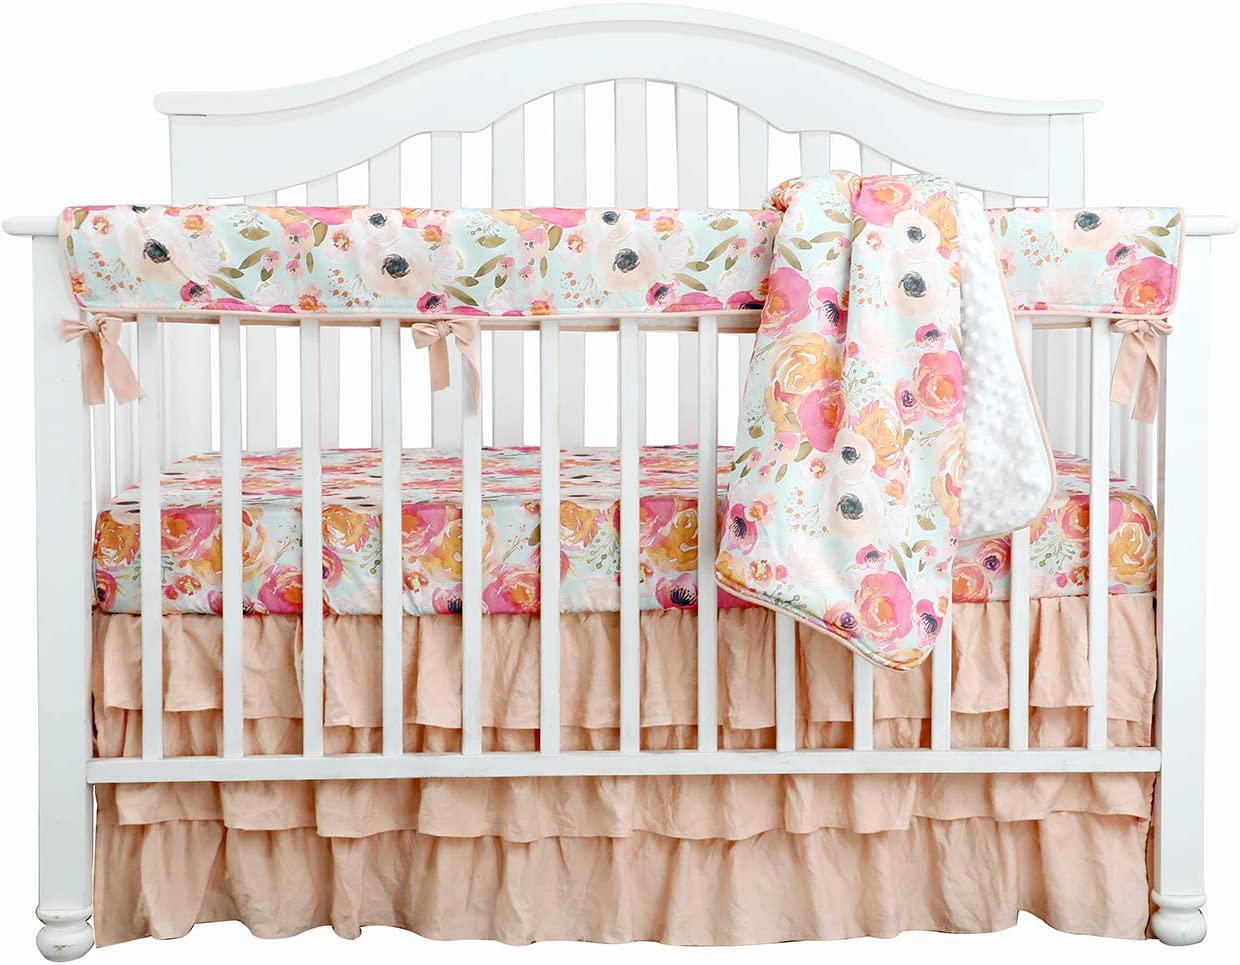 Amazon Com Boho Coral Floral Ruffle Skirt Baby Minky Blanket Peach Floral Nursery Crib Skirt Set Baby Girl Crib Bedding Feather Blanket Poppy Watercolor Floral 4pc Set Home Kitchen